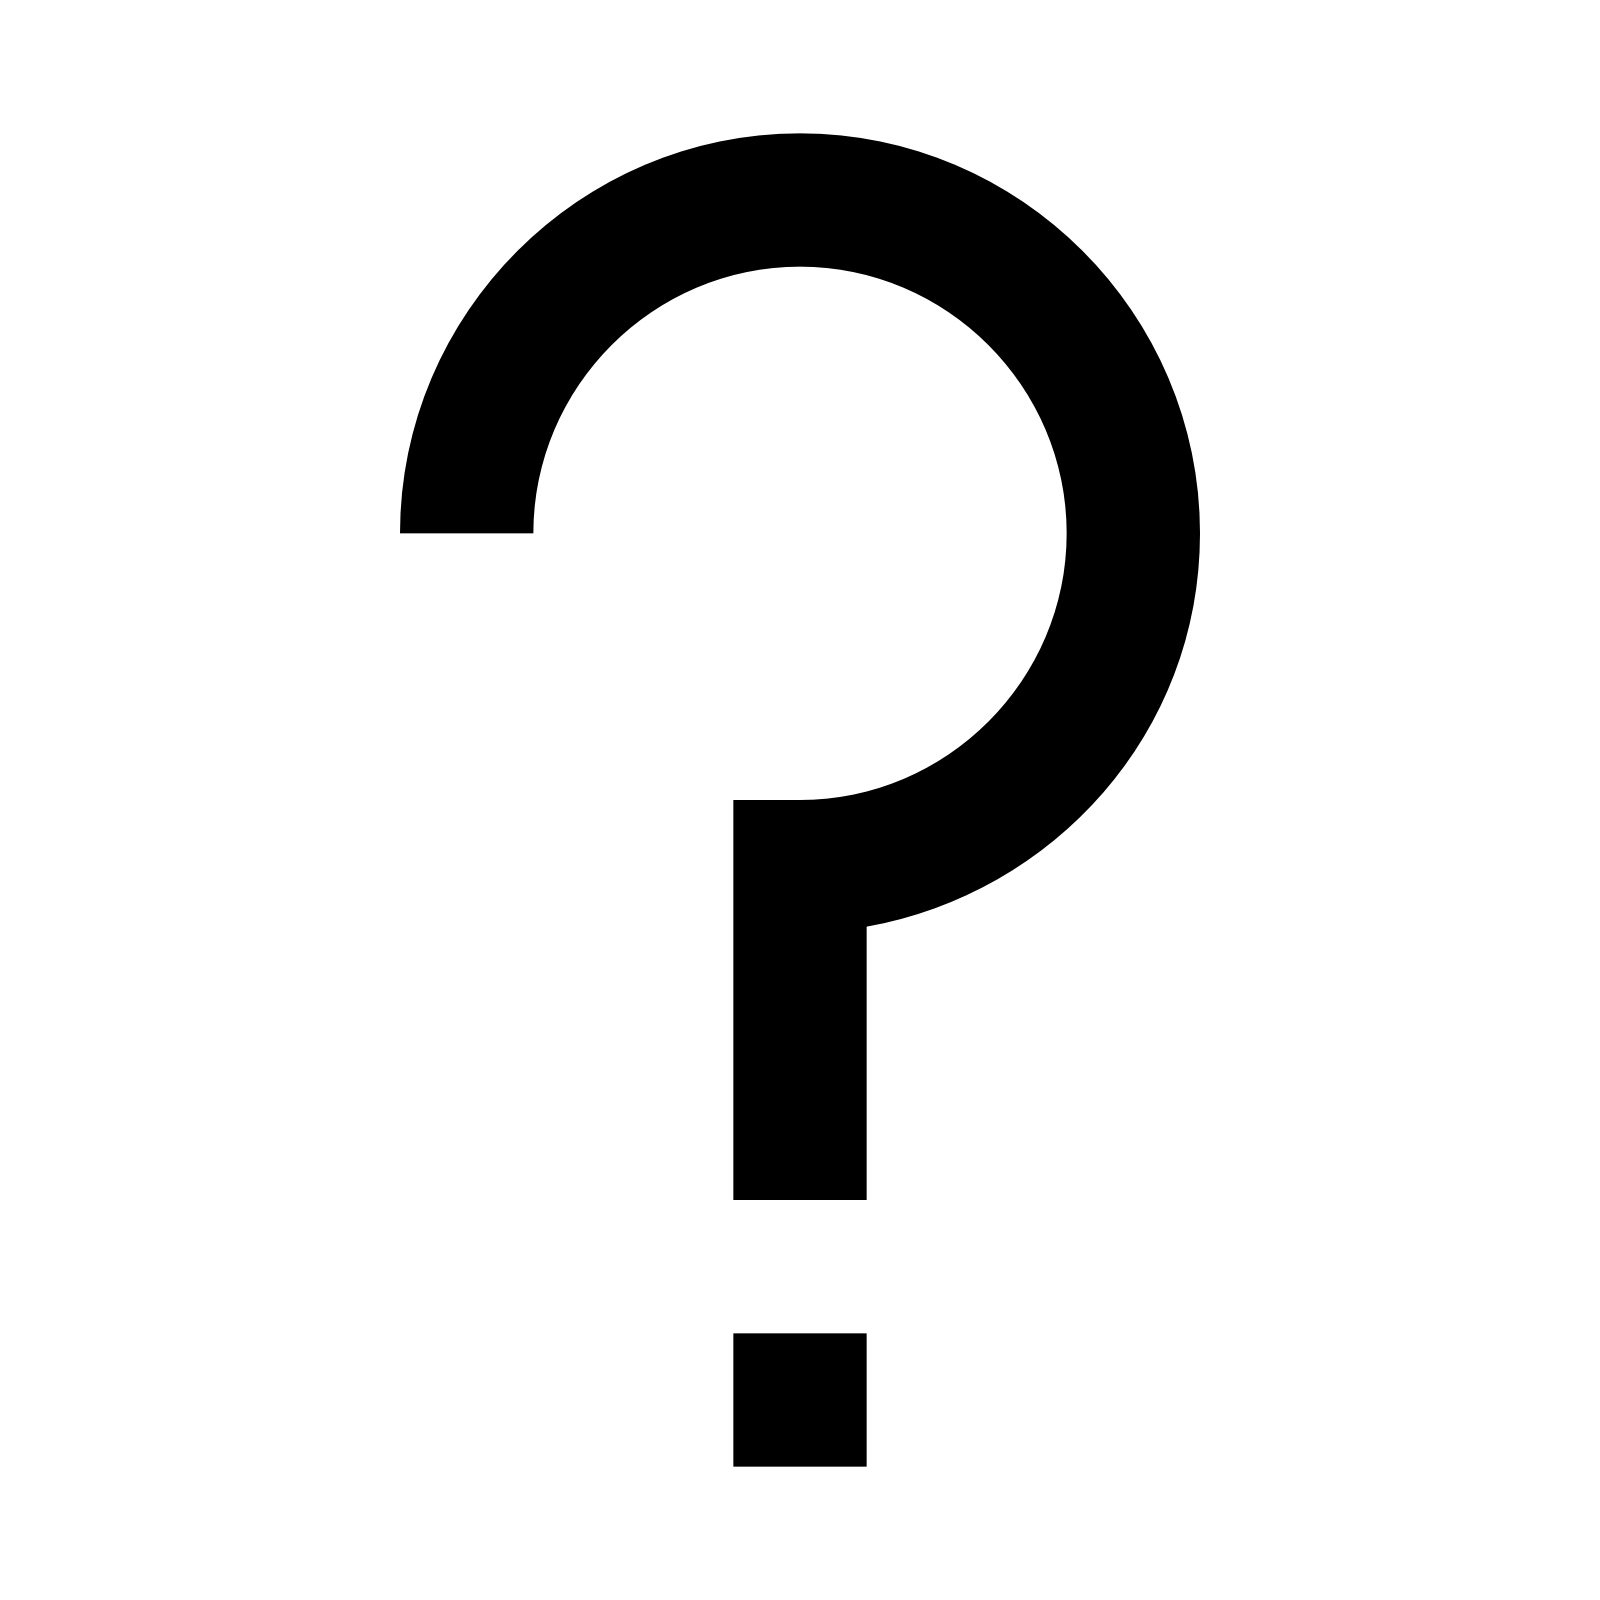 PNG Question - 68021